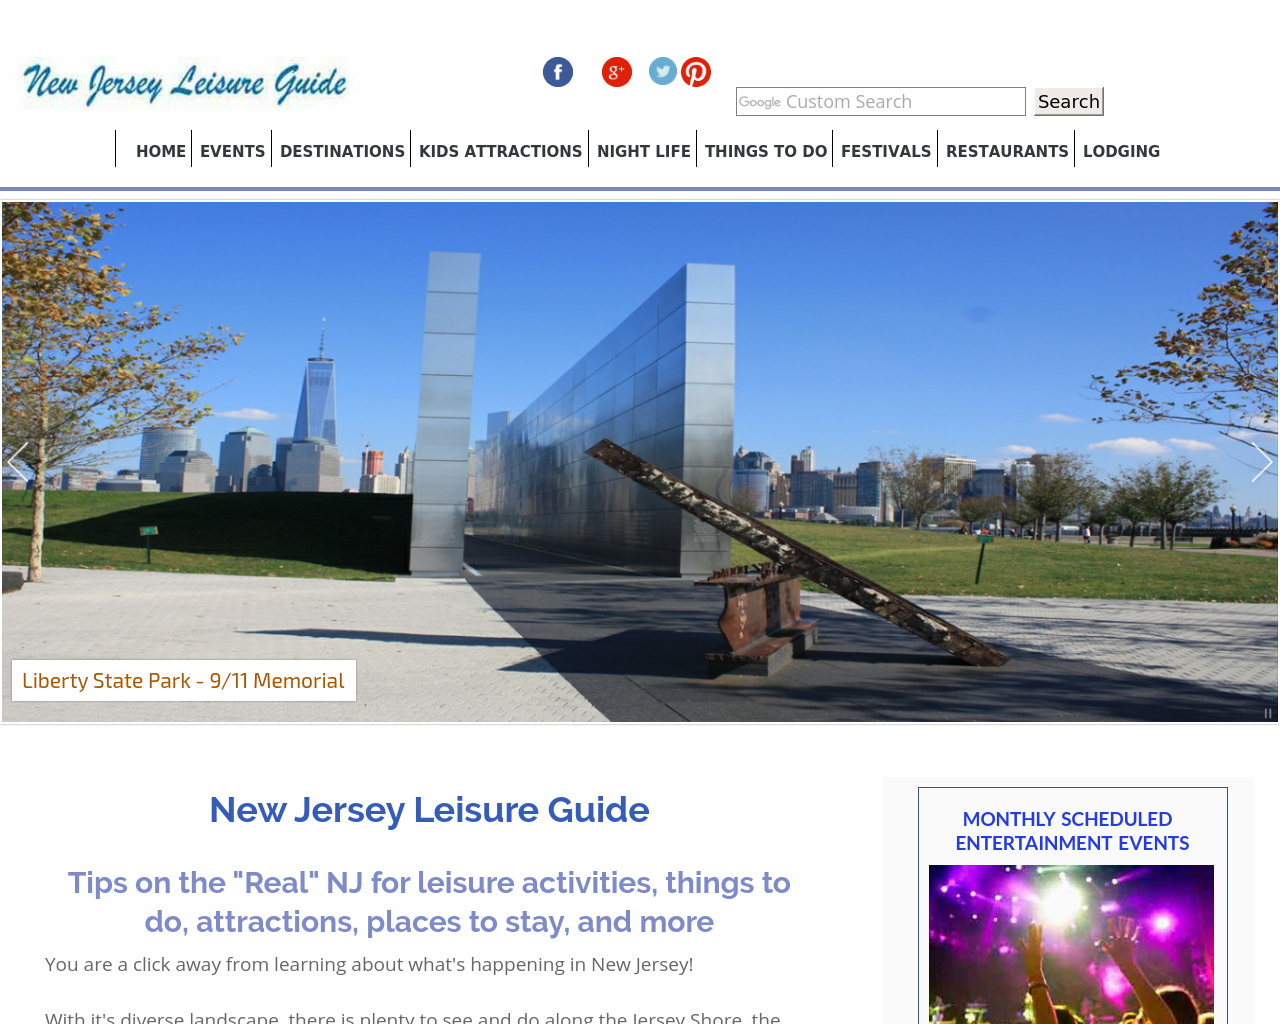 New-Jersey-Leisure-Guide-Advertising-Reviews-Pricing